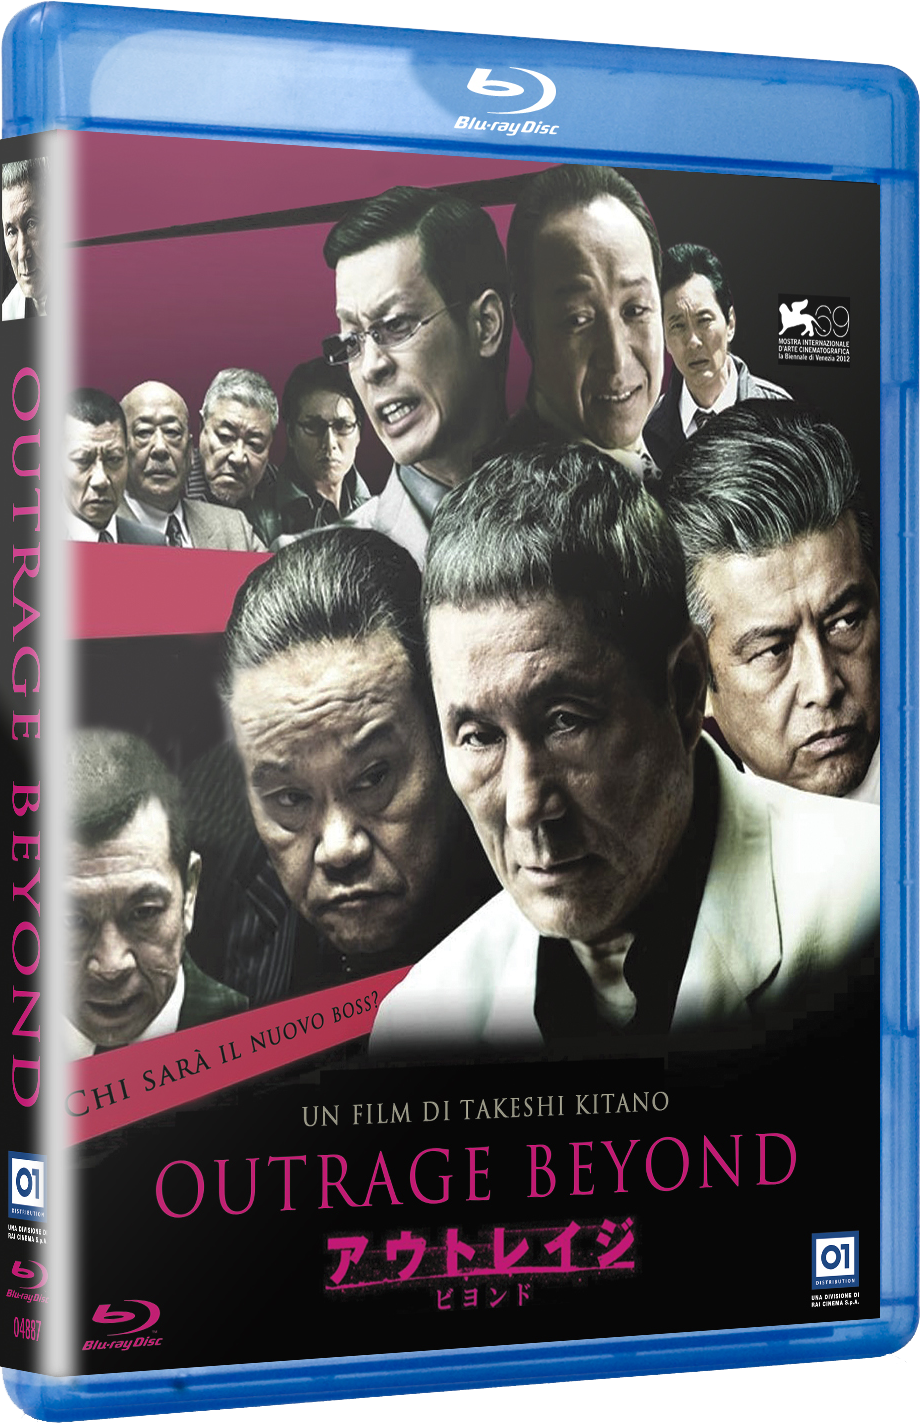 outrage beyond blu-ray